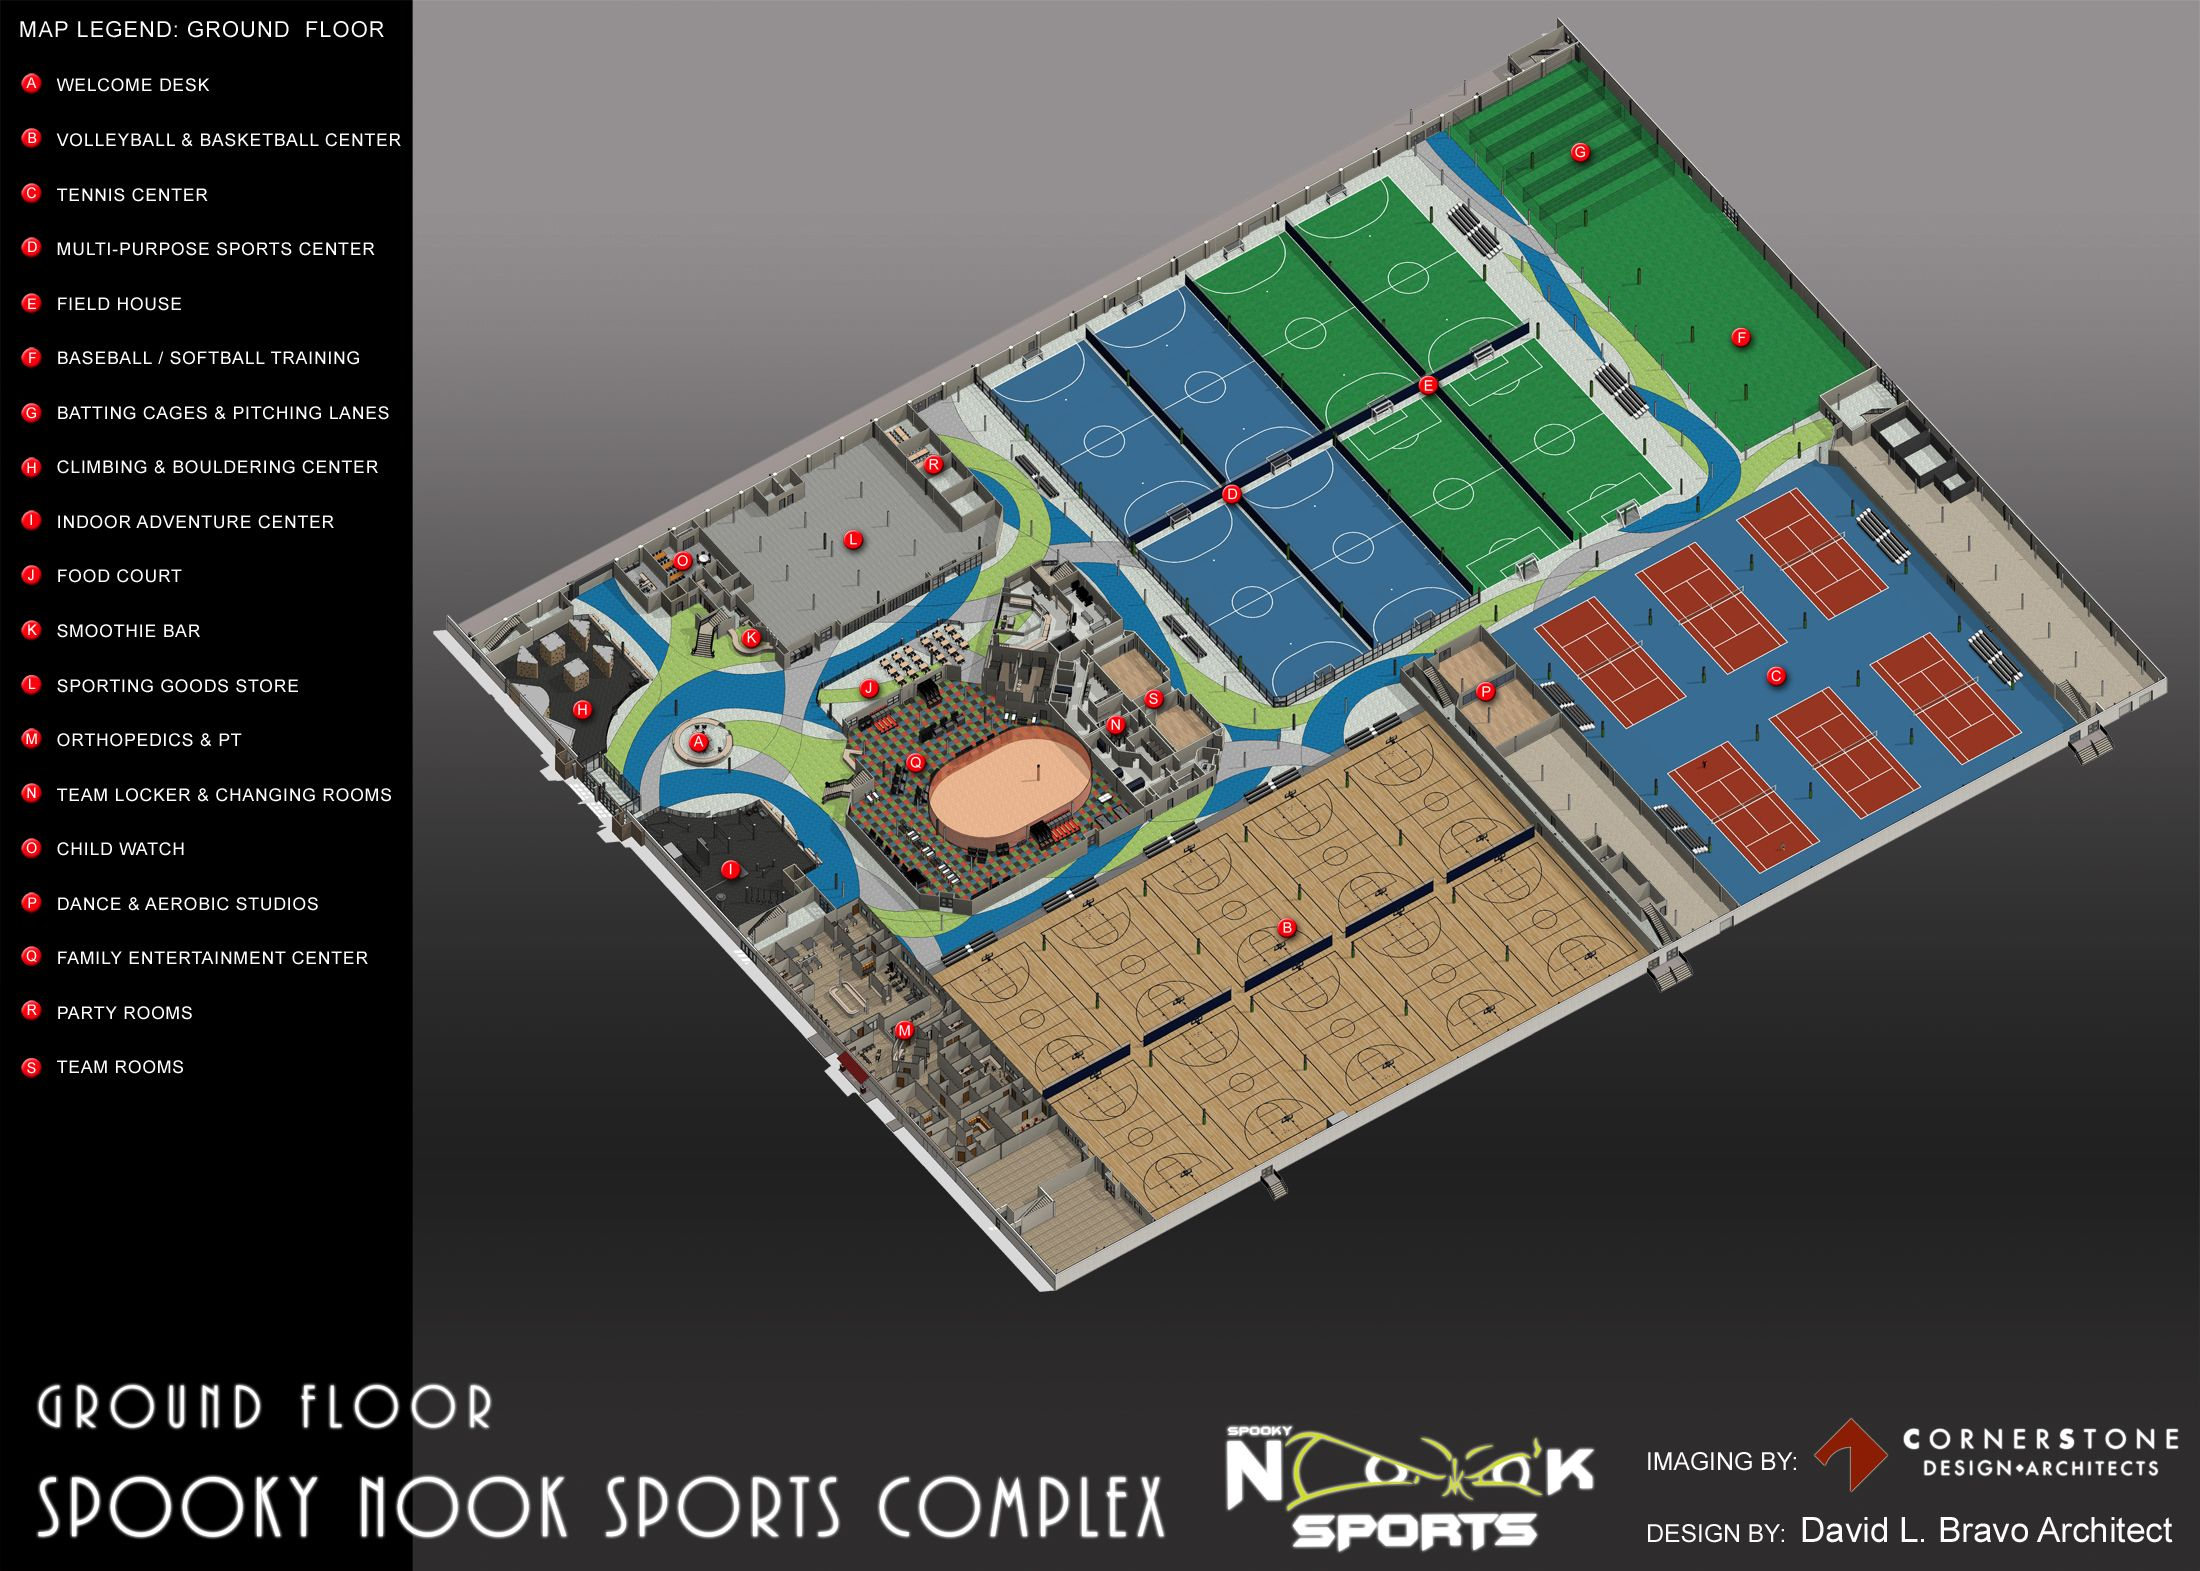 On Our Main Level We Will Feature Courts And Turf Fields For Sports Like Basketball Volleyball Tennis Sports Complex Spooky Nook Sports Softball Training